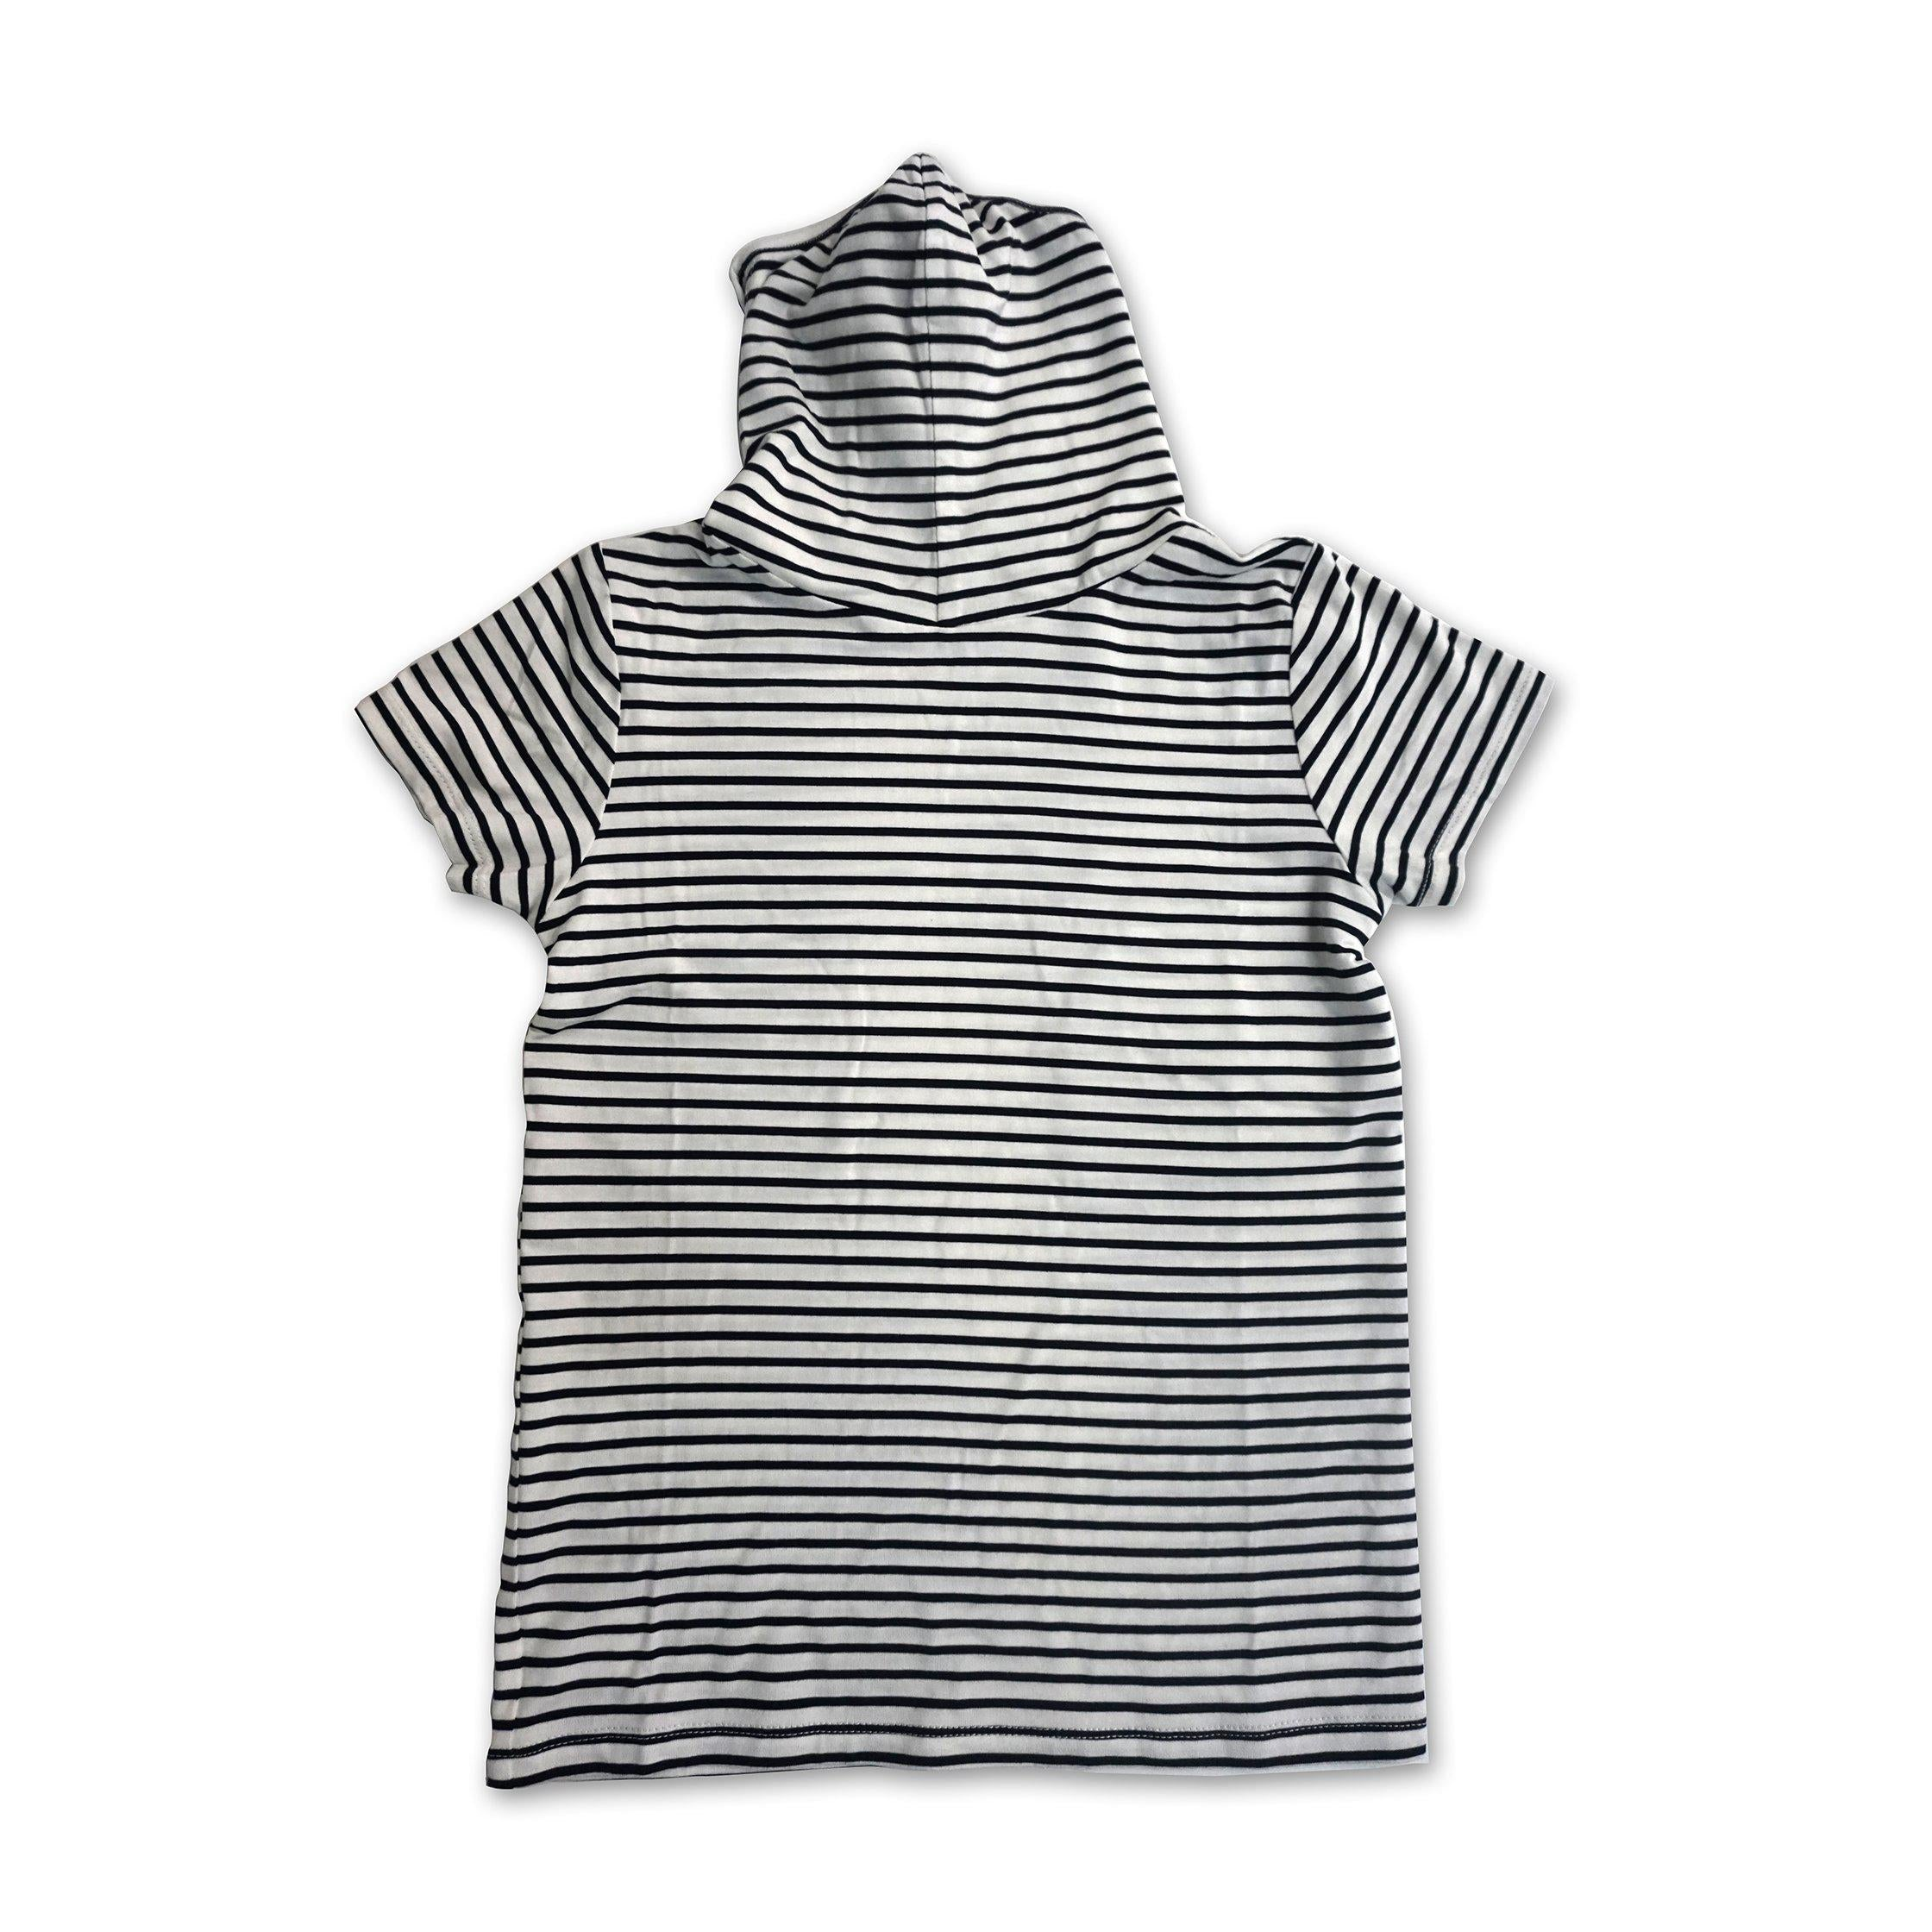 Kids Short Sleeve Navy Stripe Shmask™